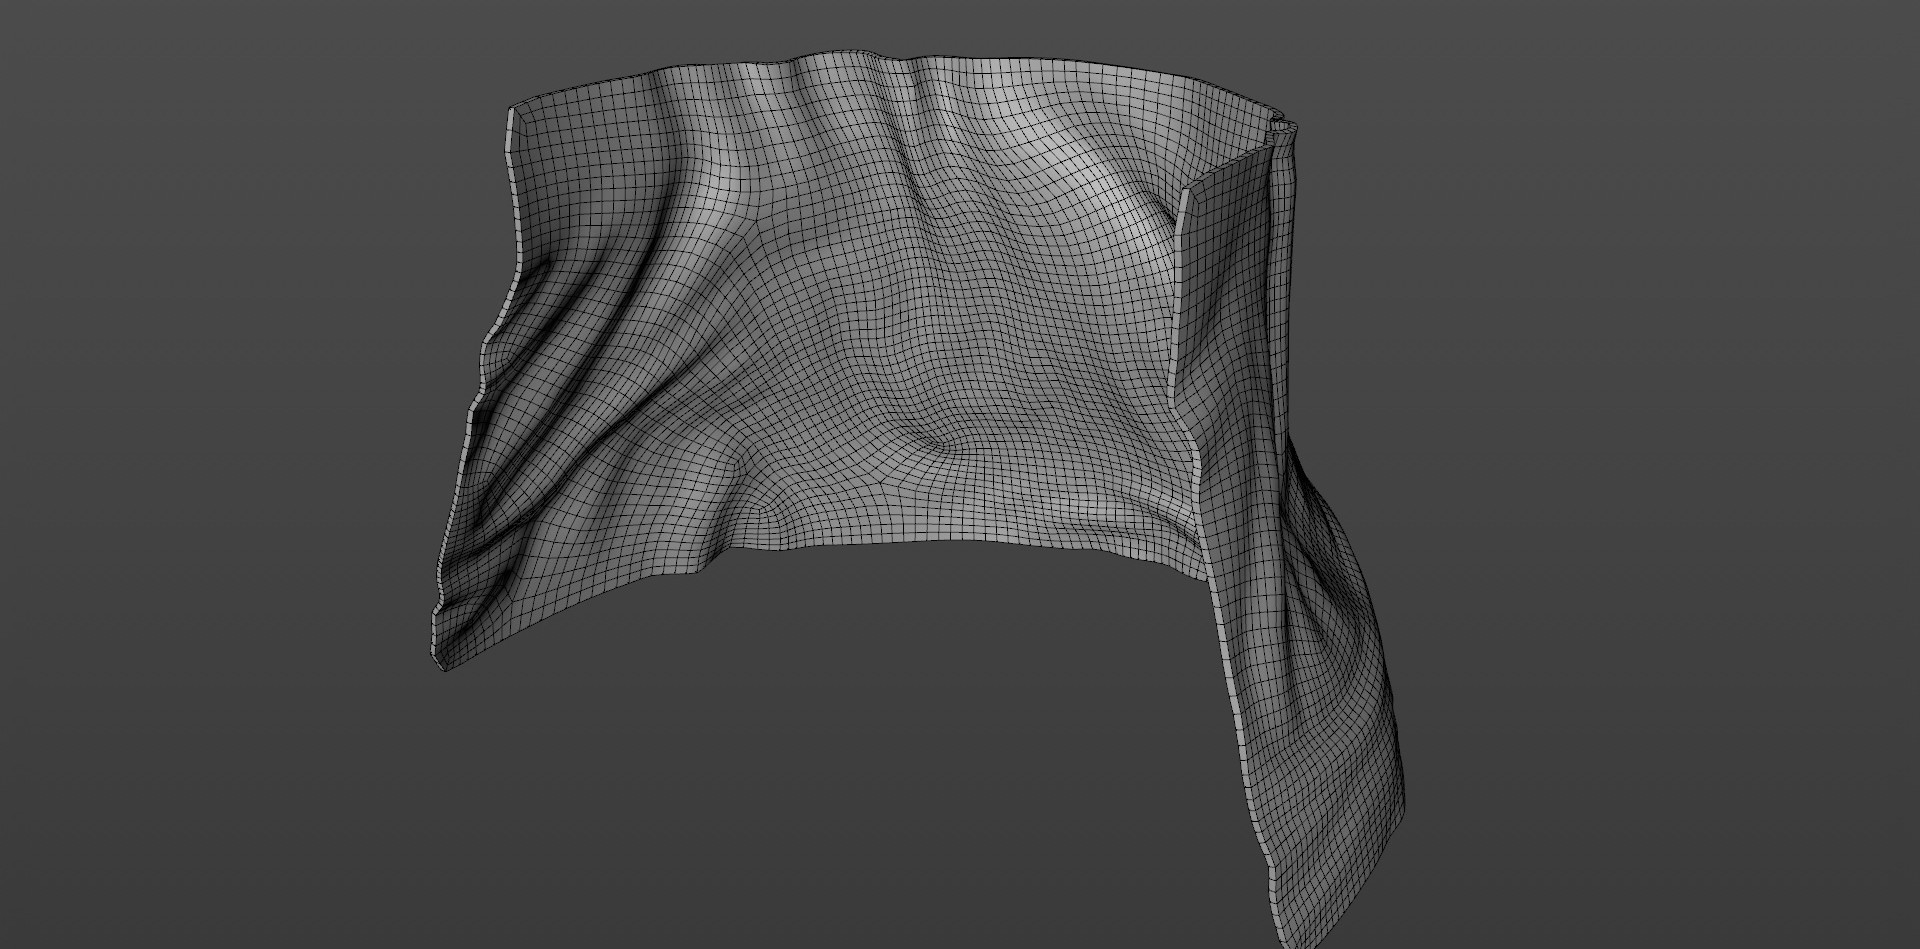 Fabric was created using a Smoothing Deformer.